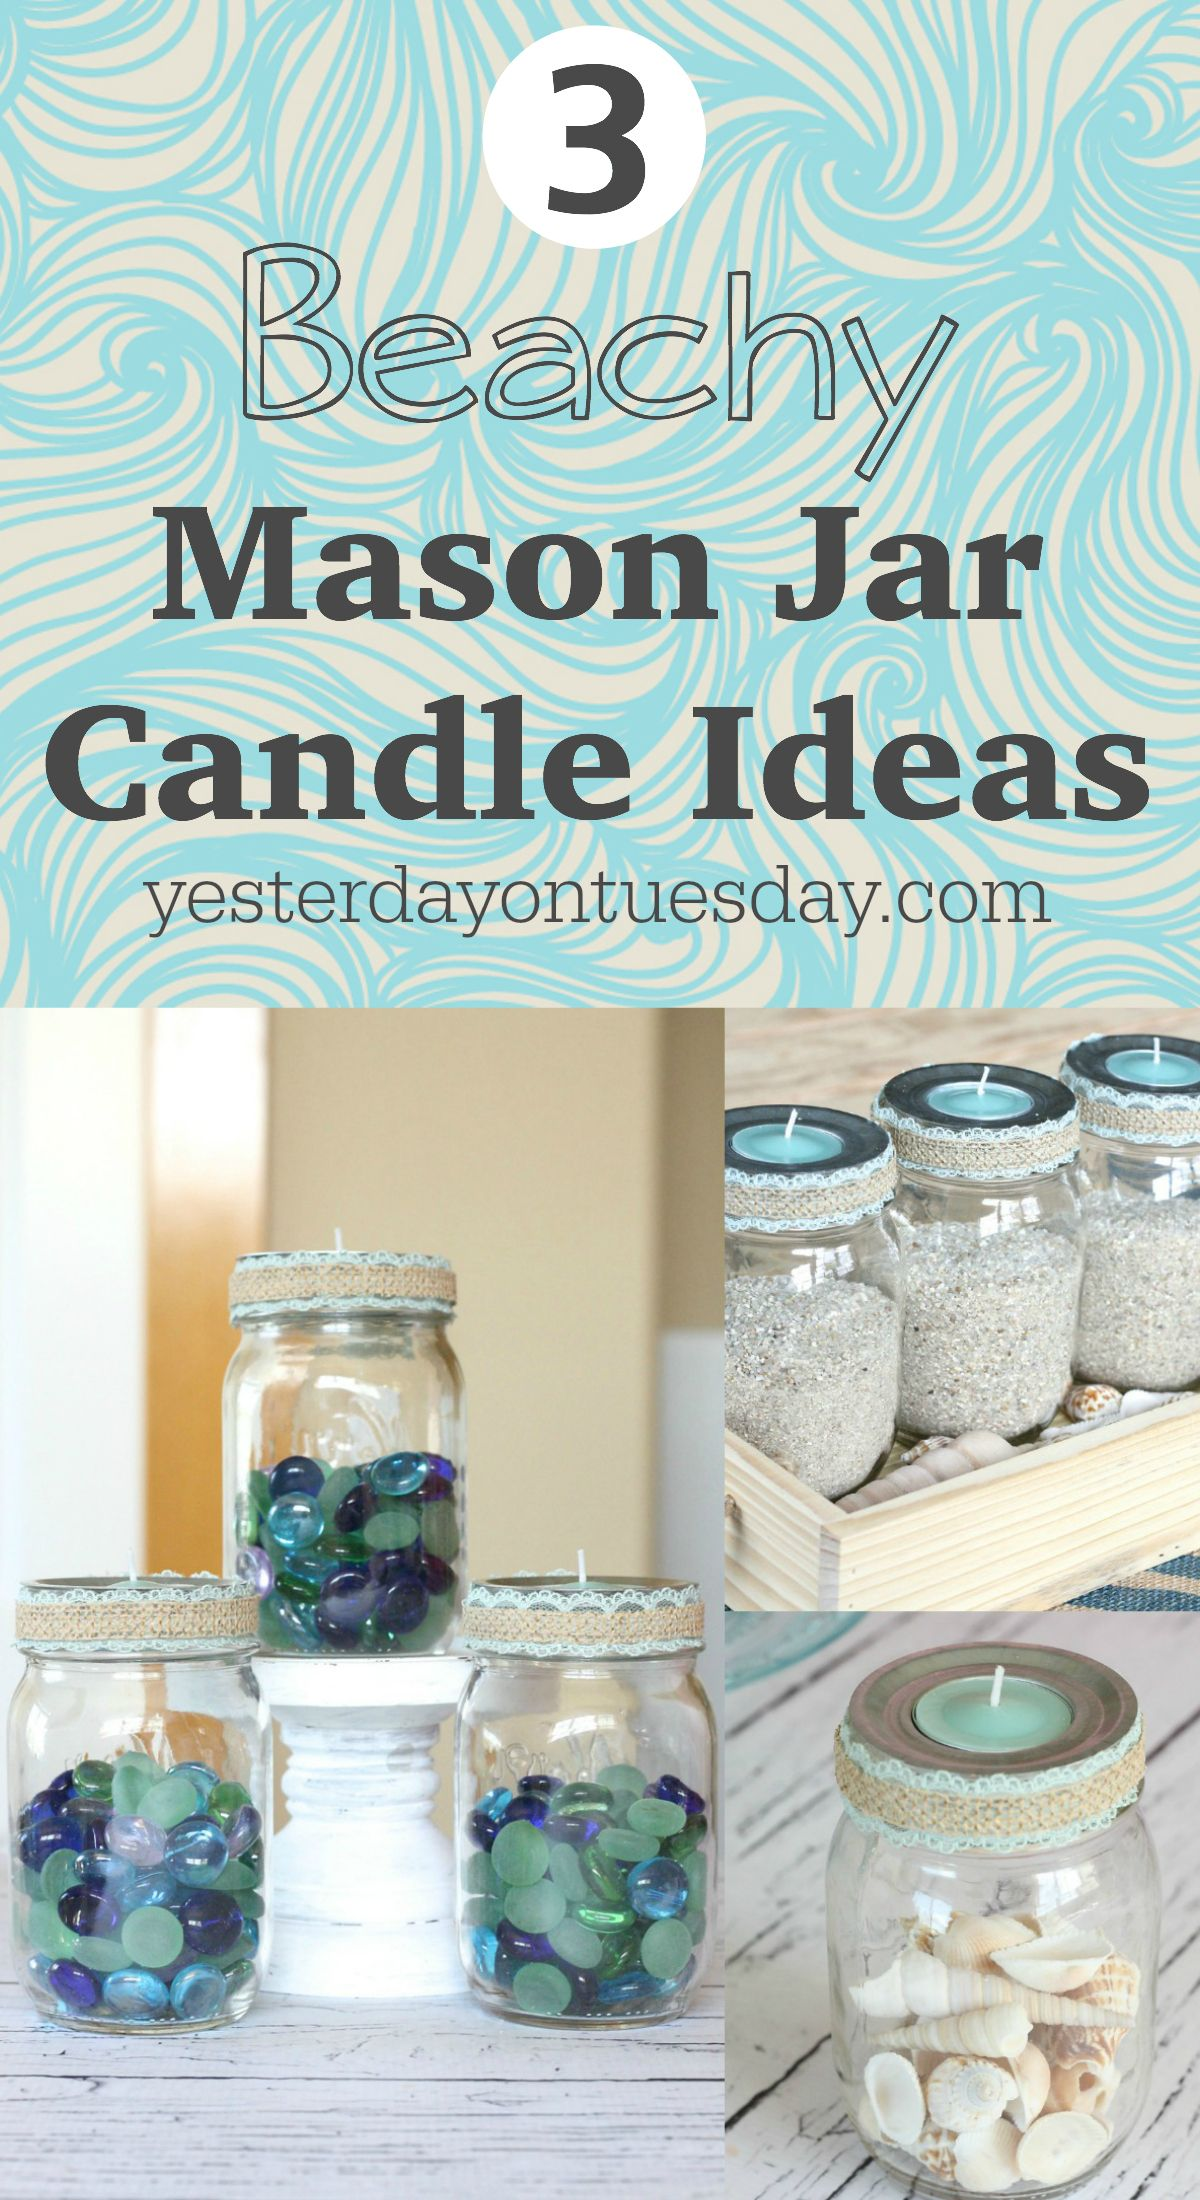 3 Beachy Mason Jar Candle Ideas How to style your Mason